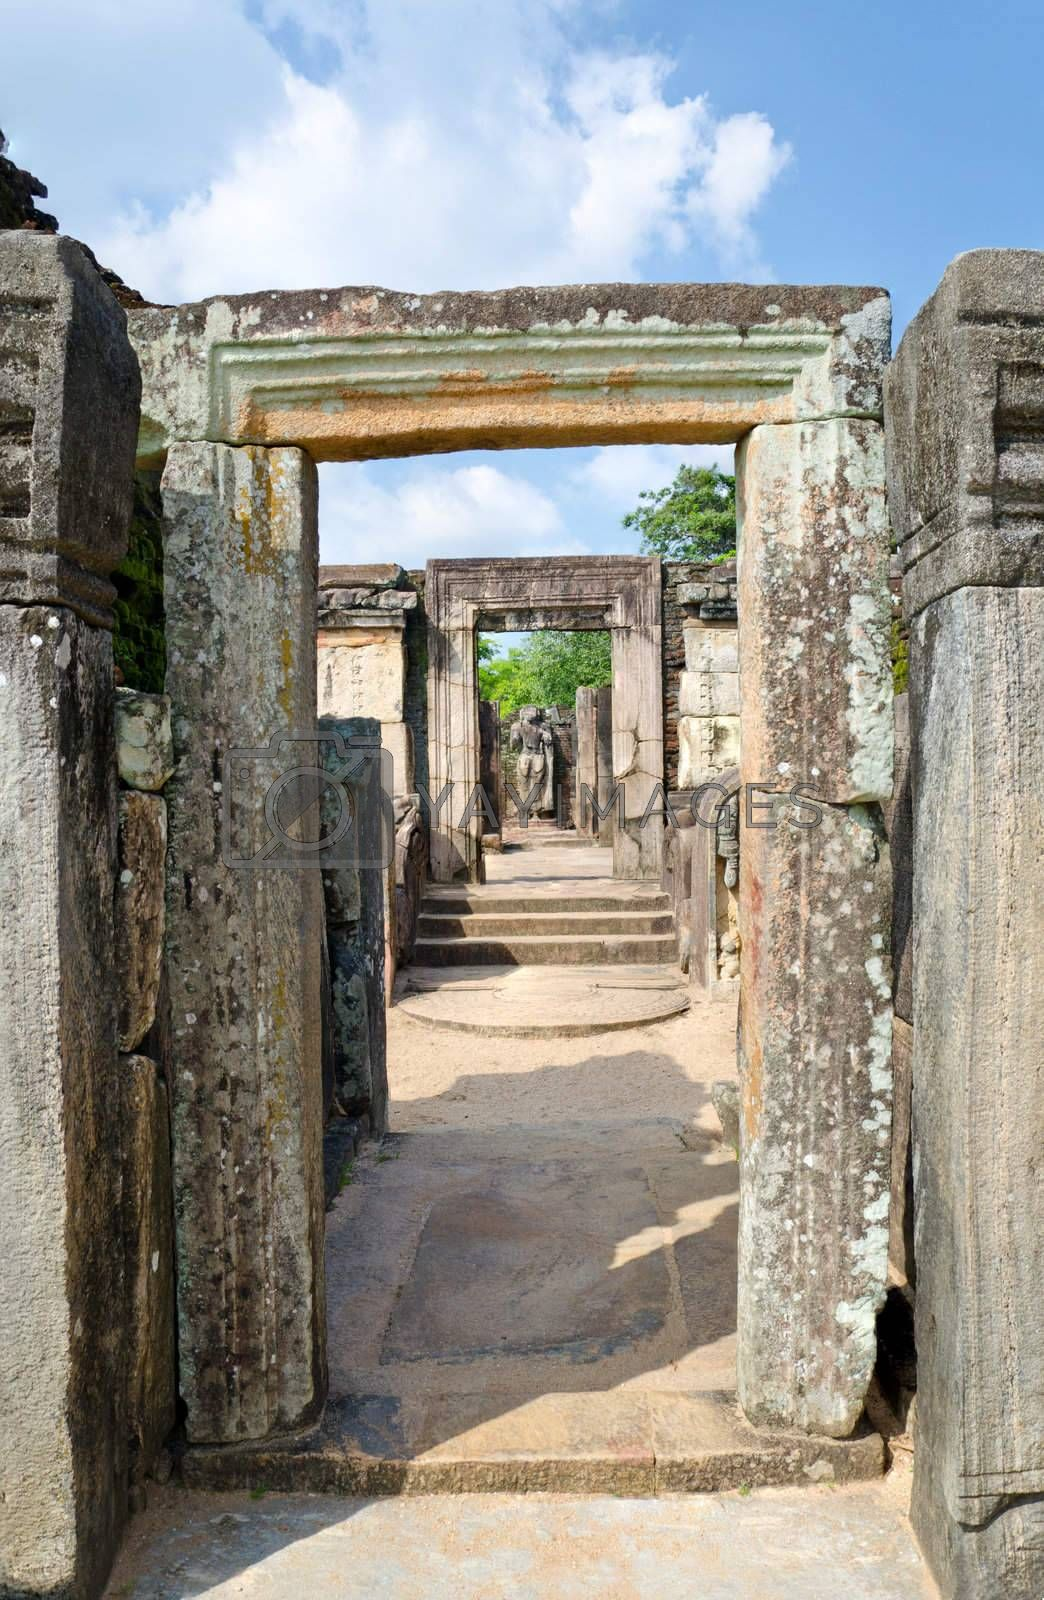 Ruins at Polonnaruwa - vatadage temple, UNESCO World Heritage Site in Sri Lanka